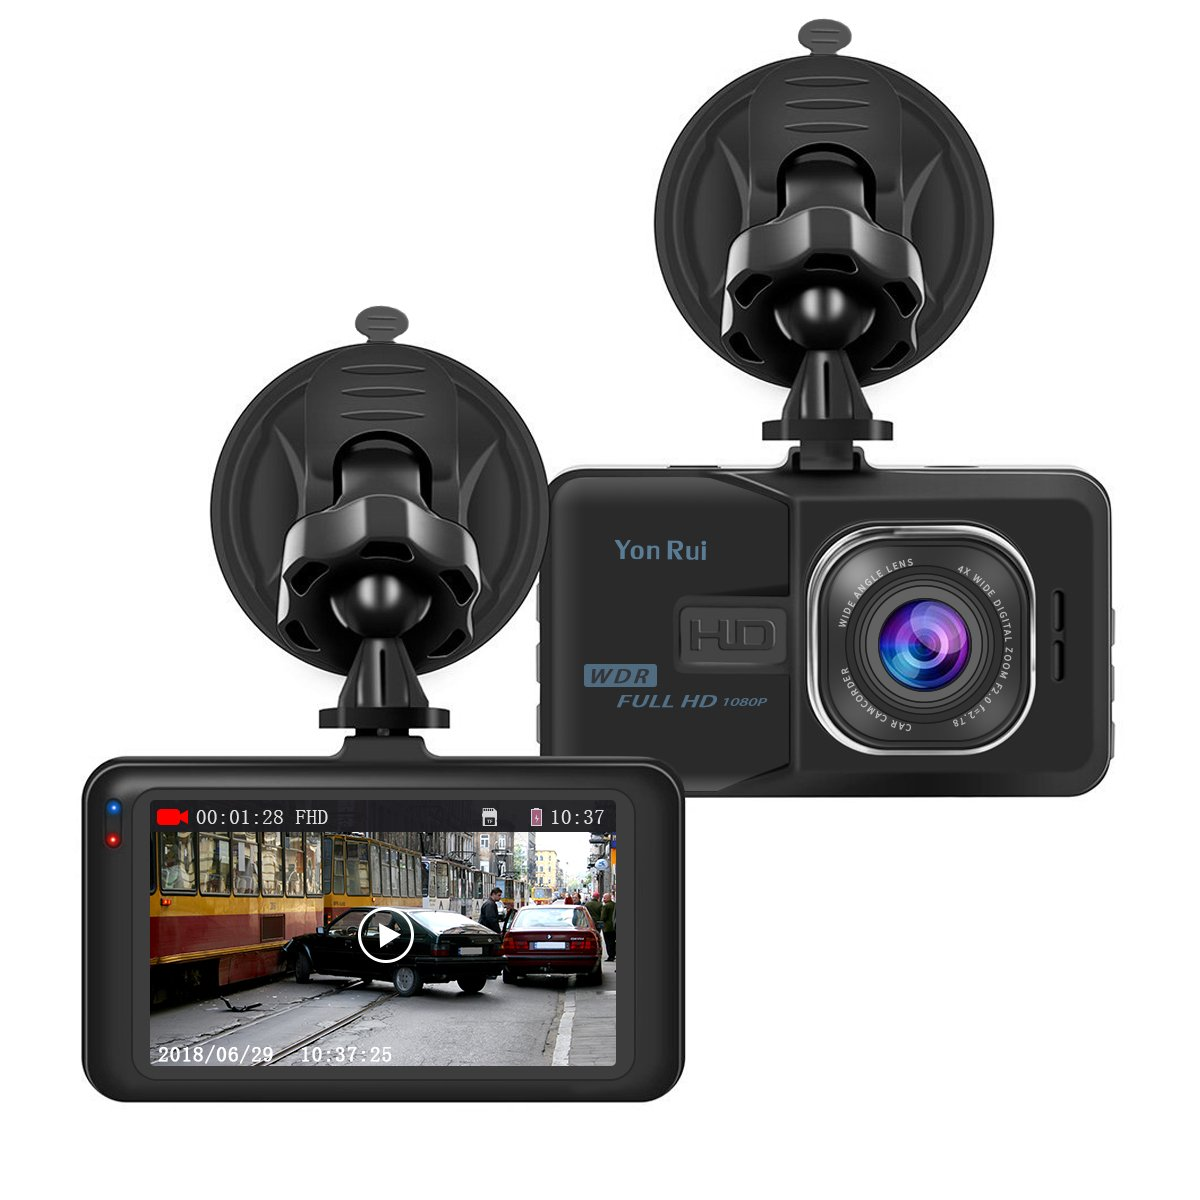 Dash Cam HD 1080P 3' Car Camera On-Dash Video Recorder Dashboard Camera with 170° Wide Angle Night Vision G-Sensor Motion Detection Parking Monitor Loop Recording YonRui